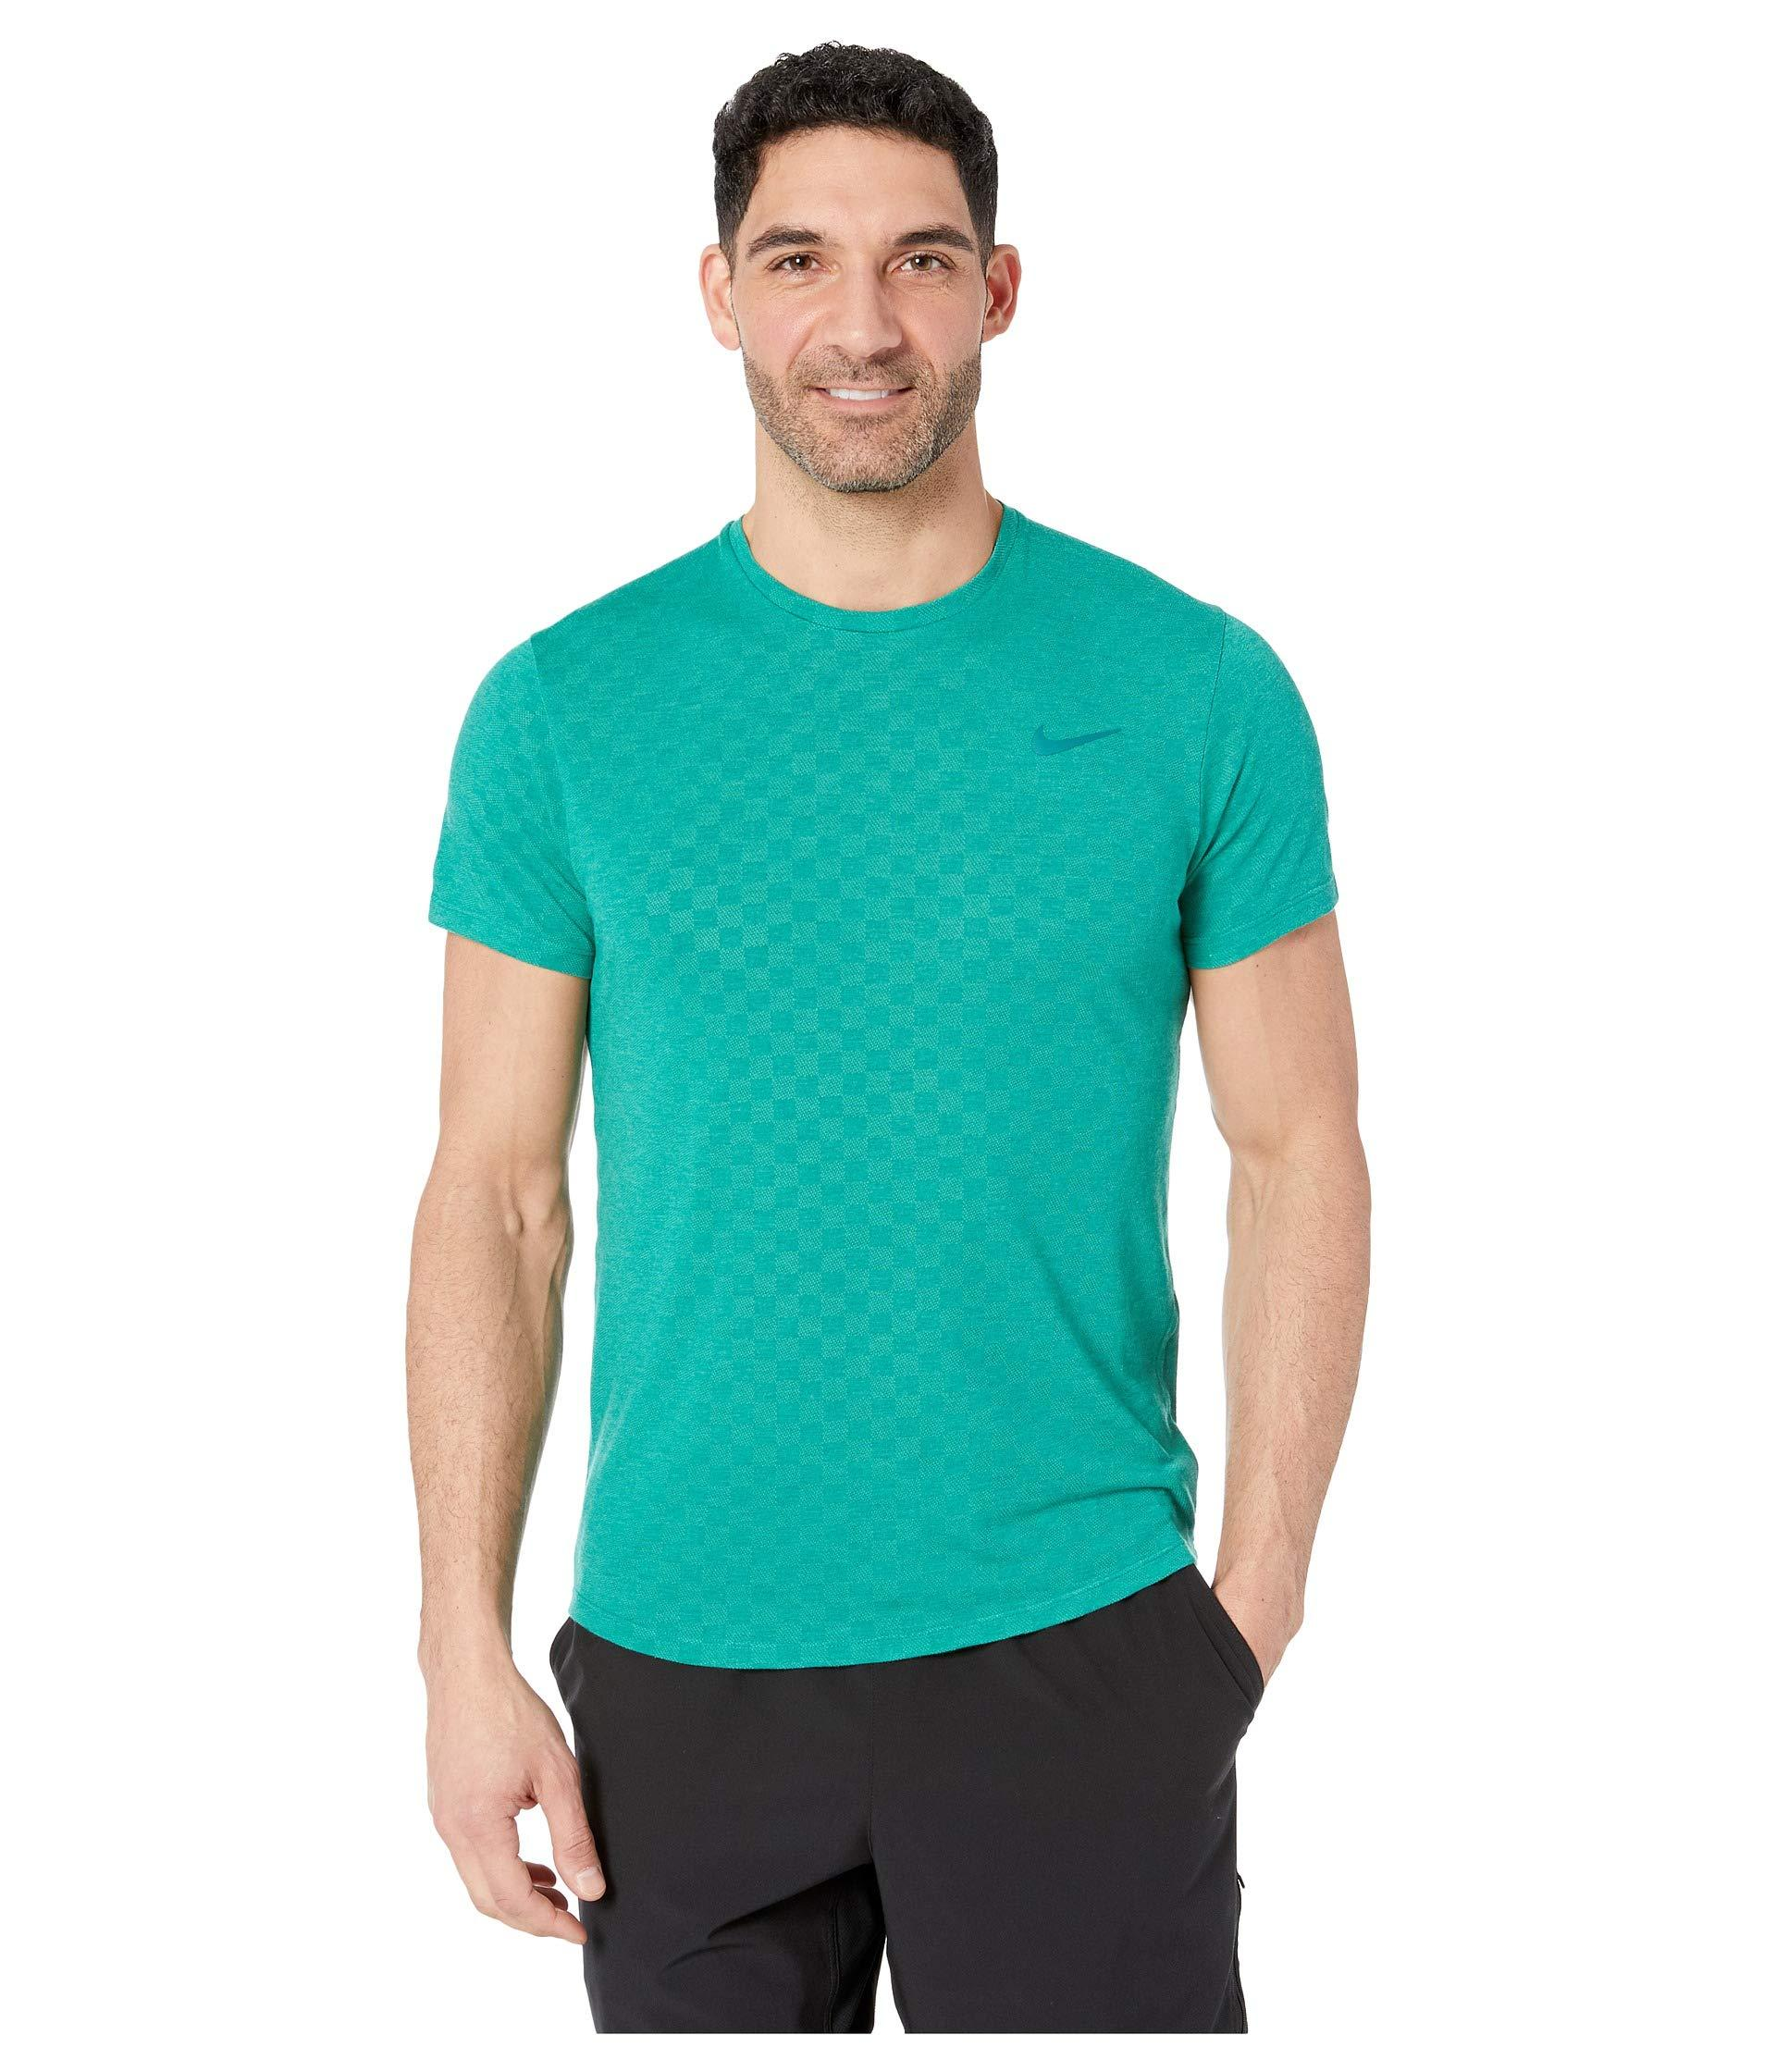 c61b2233269b Lyst - Nike Court Challenger Top Short Sleeve (black black) Men s ...